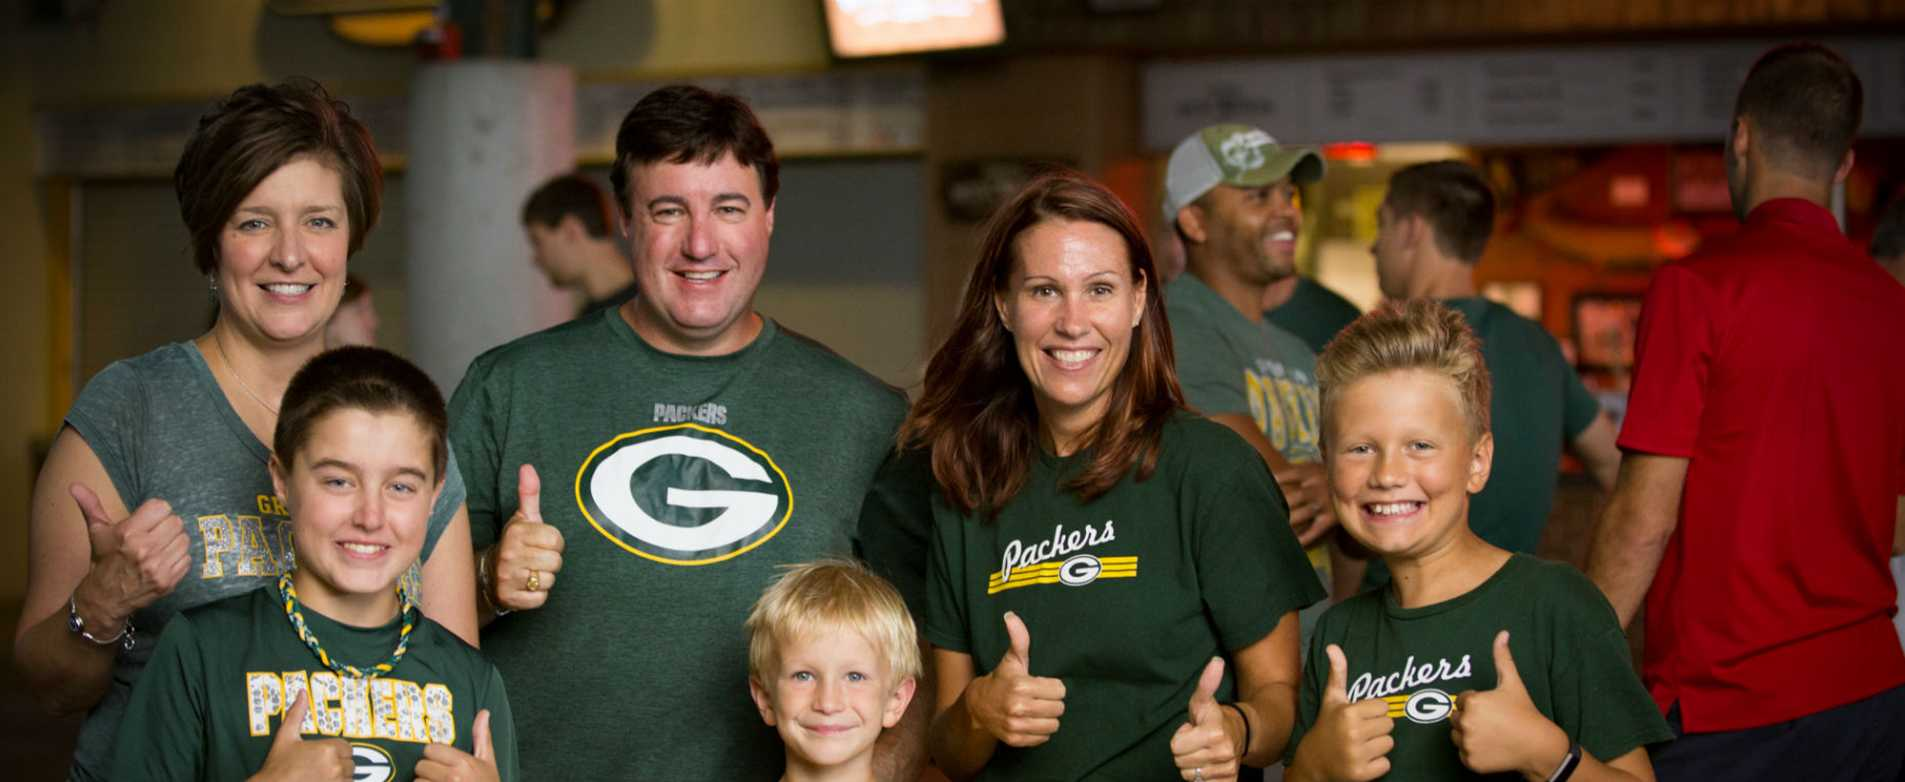 Packers Fans Giving Thumbs Up in Lambeau Field Atrium